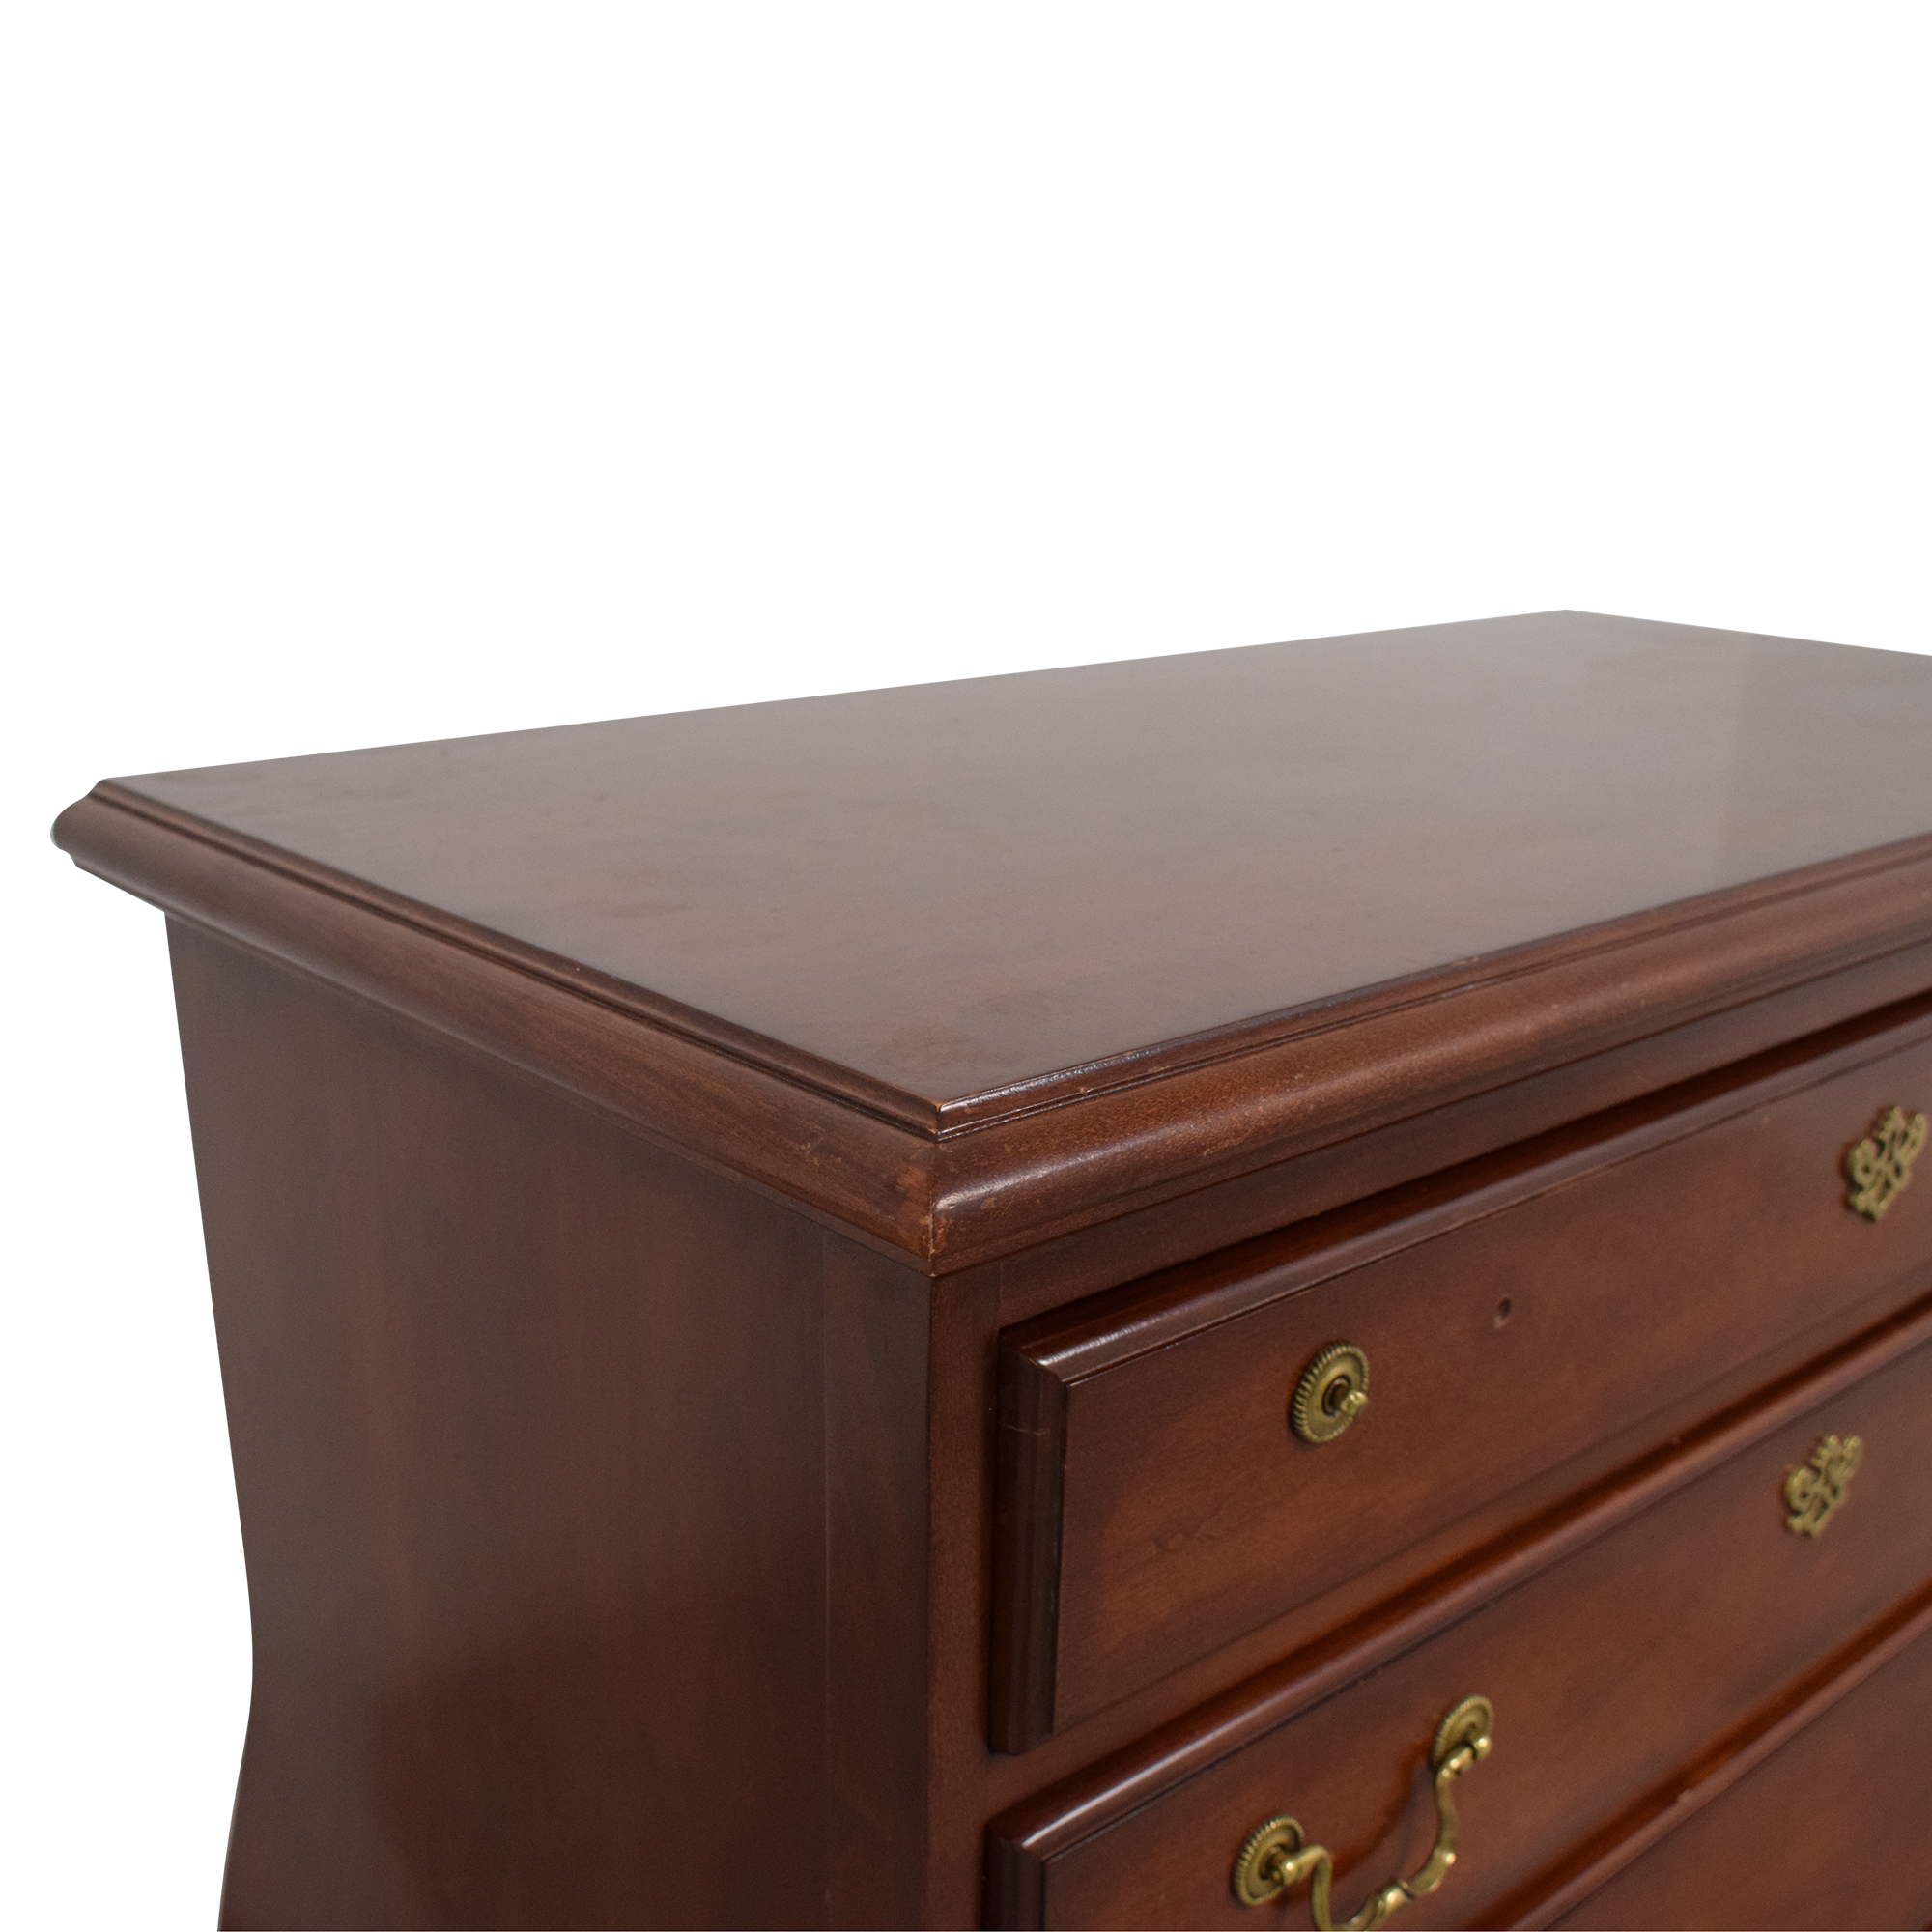 Thomasville Thomasville Collectors Bombay Chest Nightstand Tables